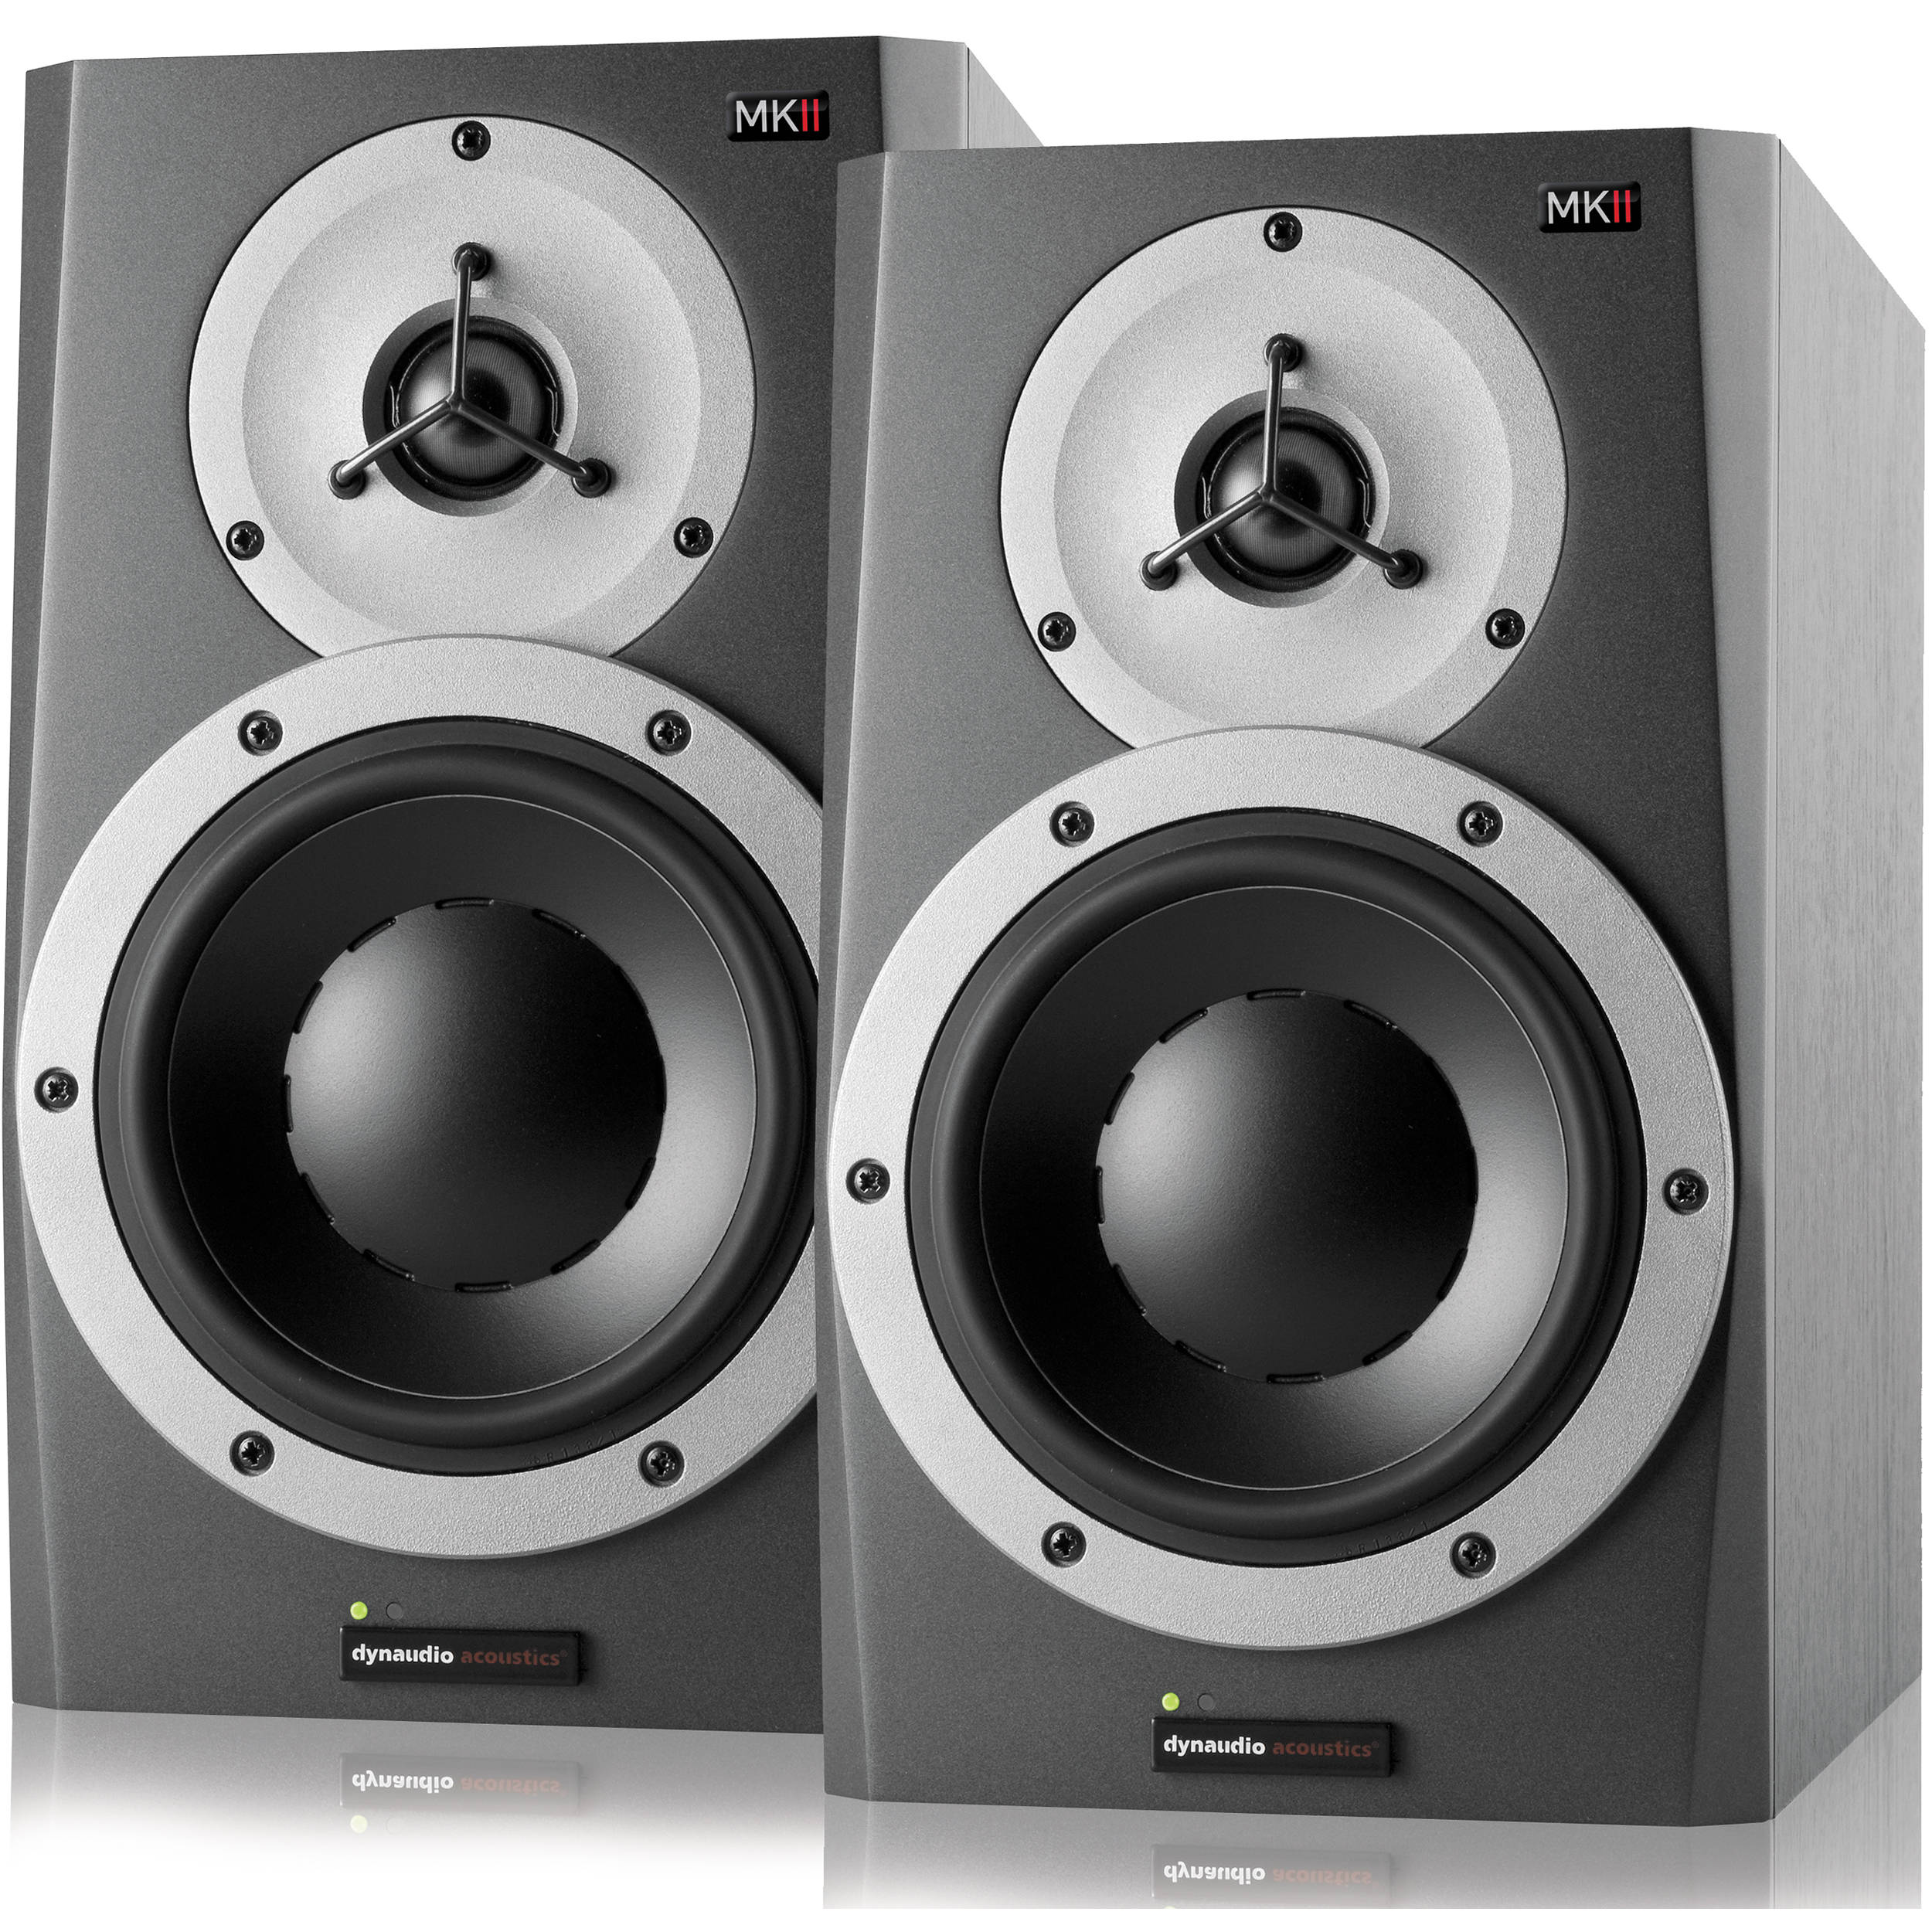 "Dynaudio Acoustics BM 5A MKII 7"" Active 2-Way Studio Monitor ..."